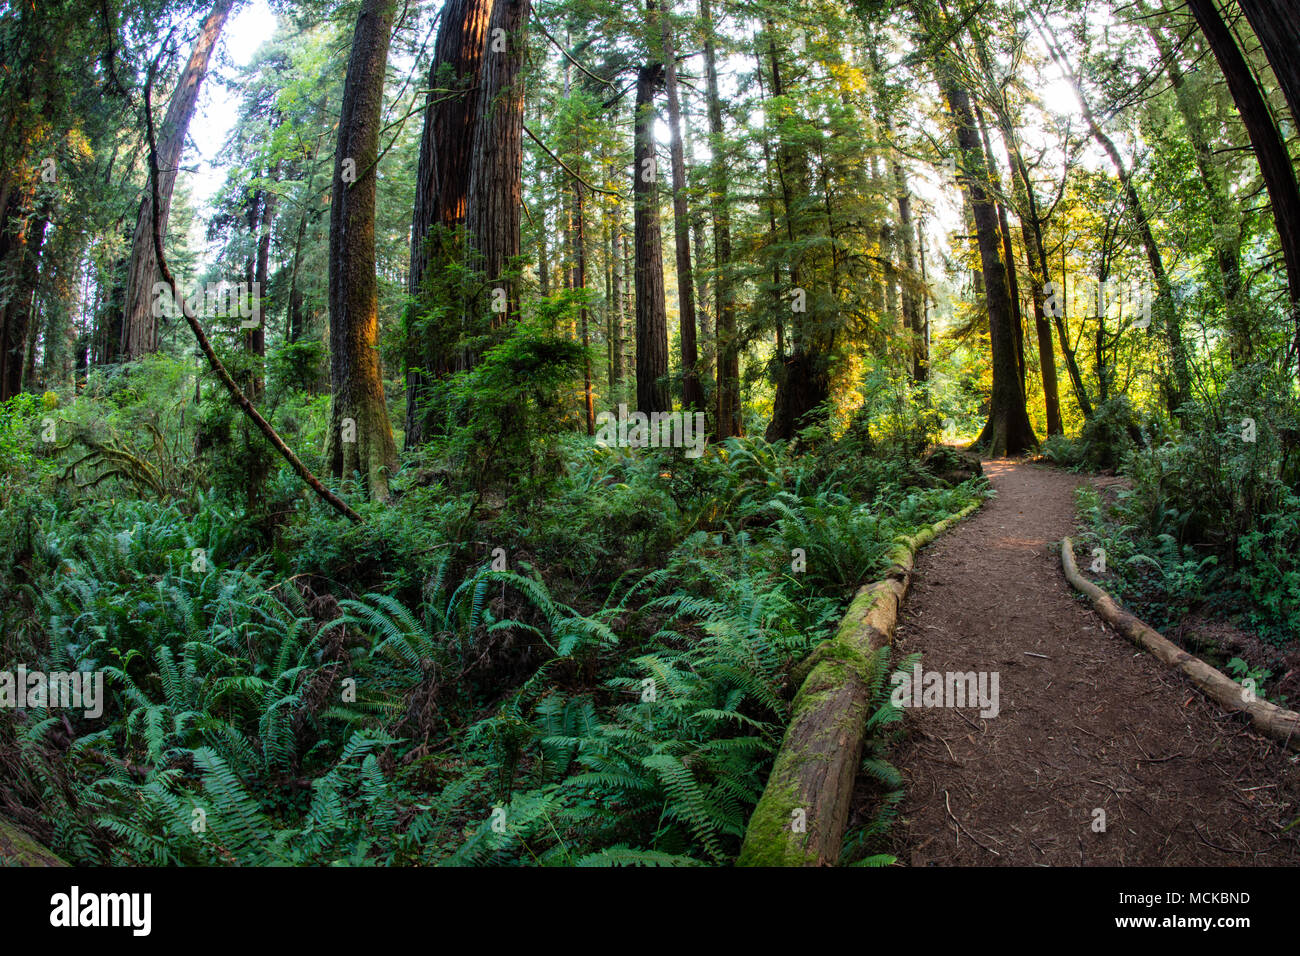 luxuriant plant growth occurs in redwood national park in northern